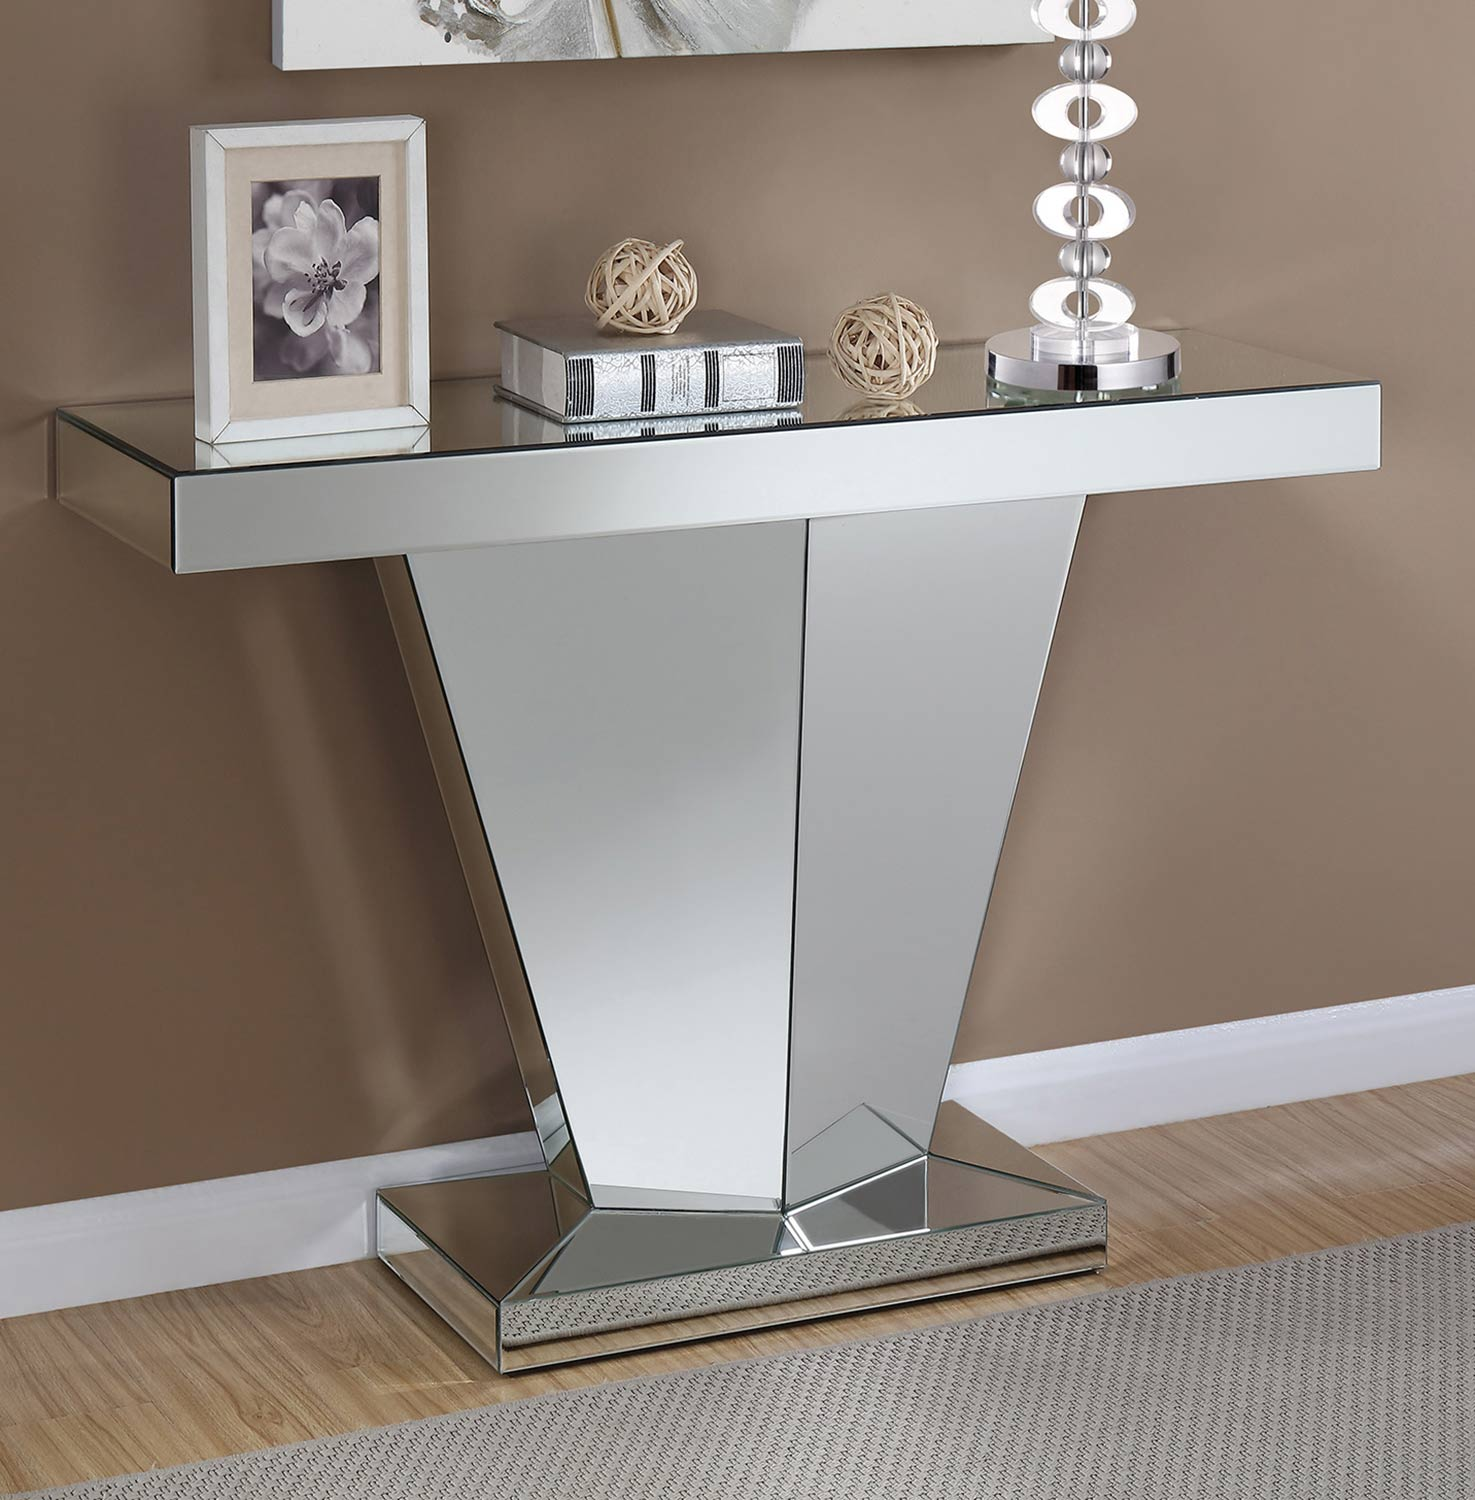 Coaster 930008 Console Table - Clear Mirror